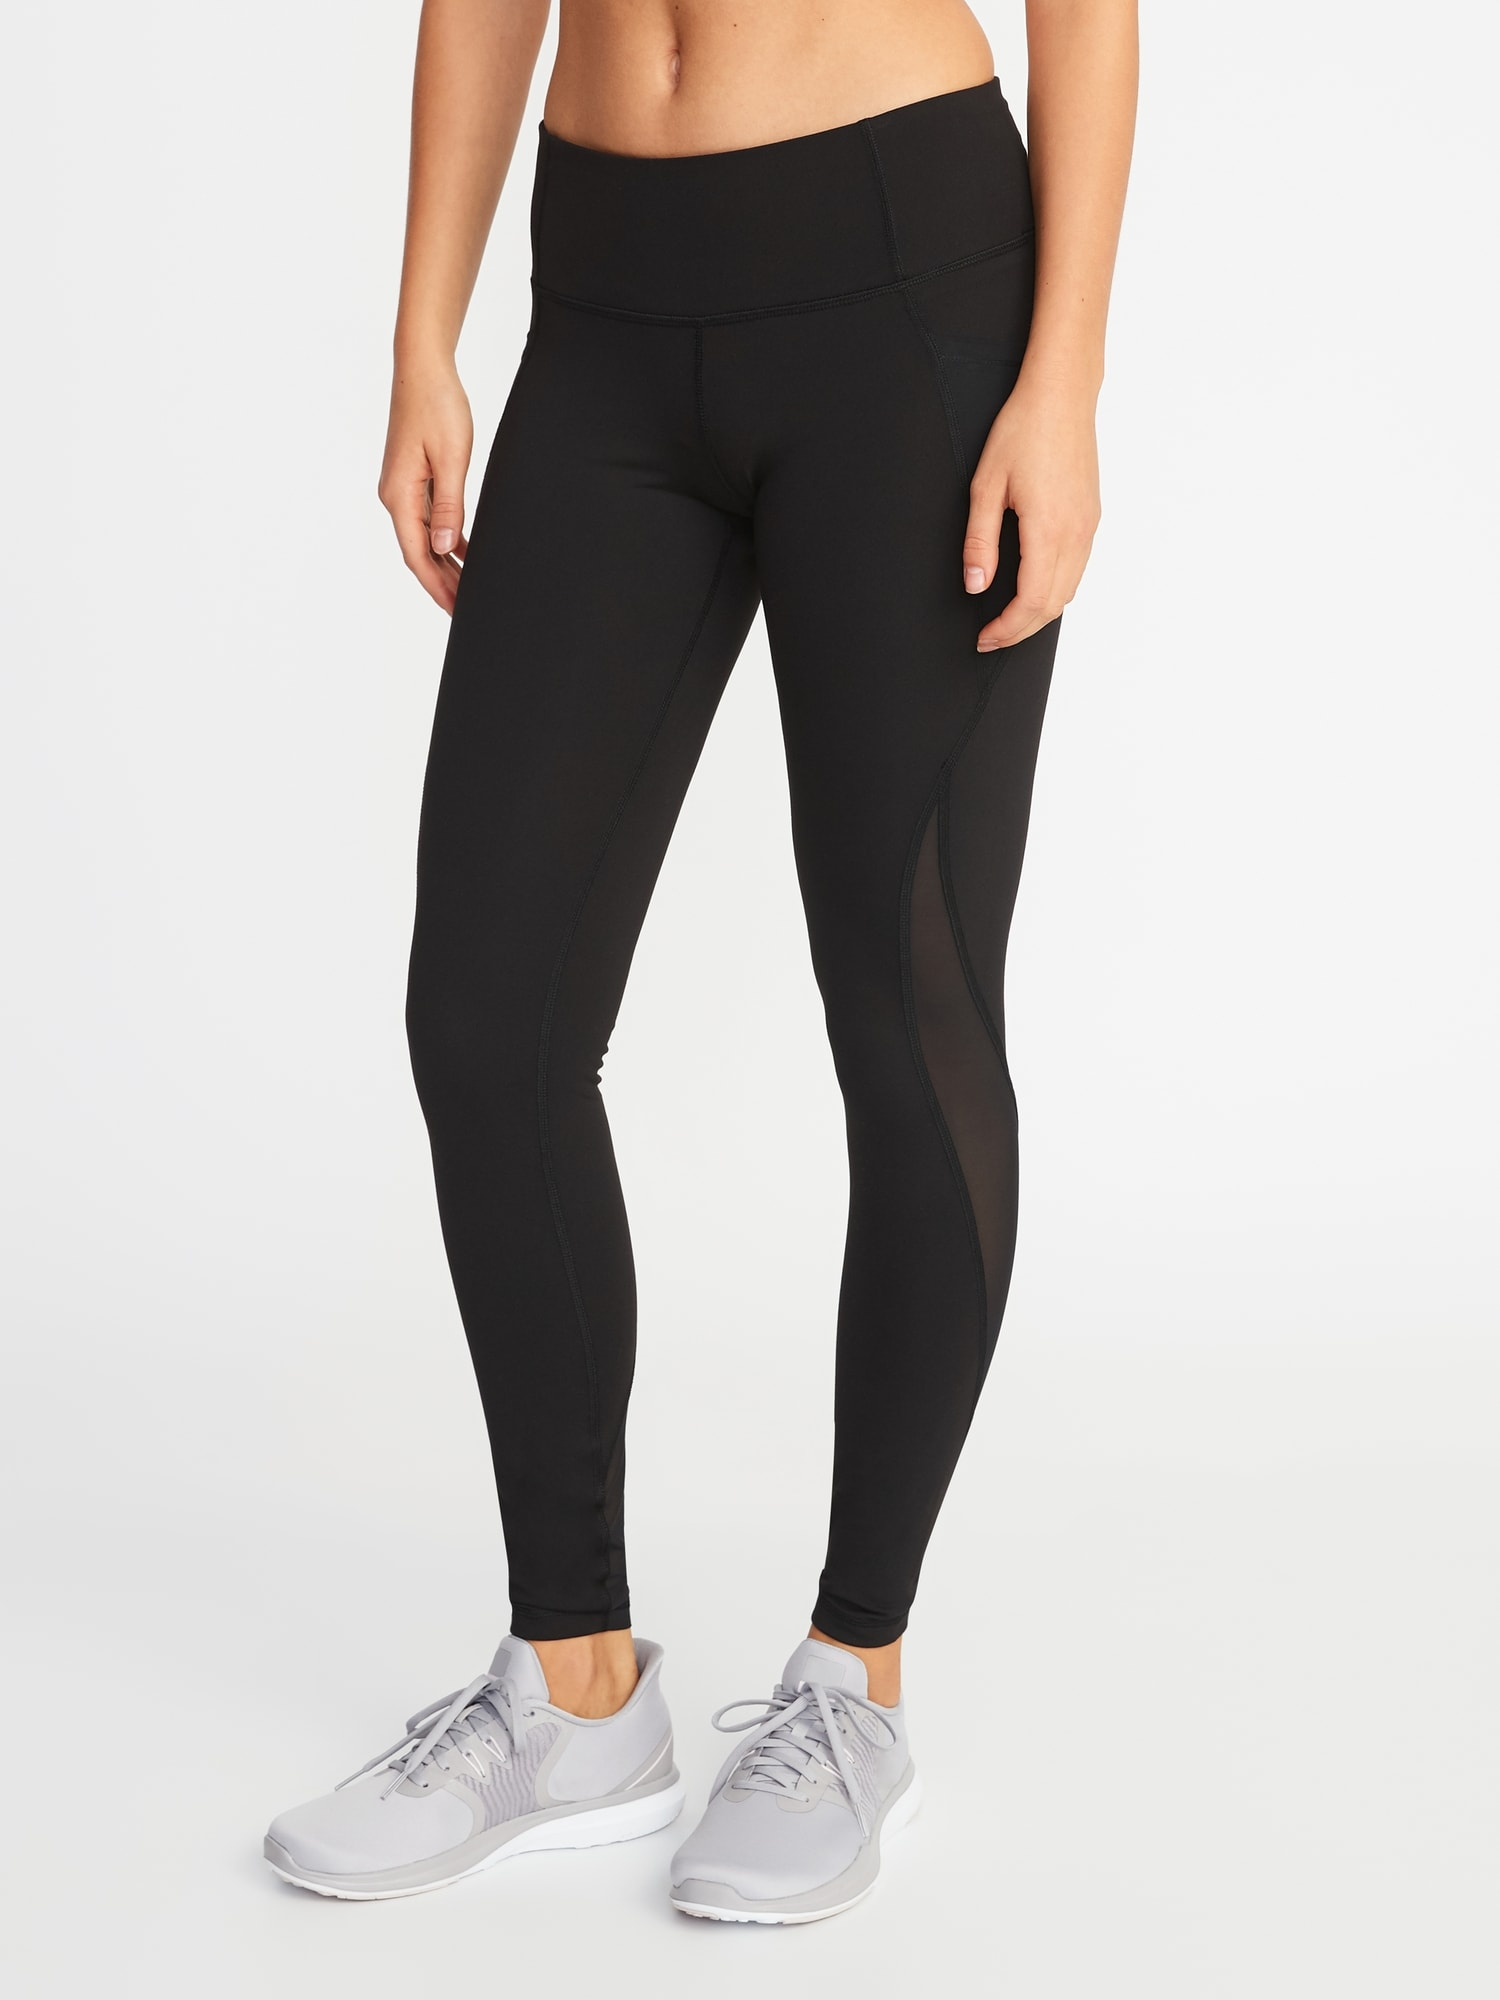 09bb5840dd3 Mid-Rise Elevate Side-Pocket Mesh-Trim Compression Leggings for Women